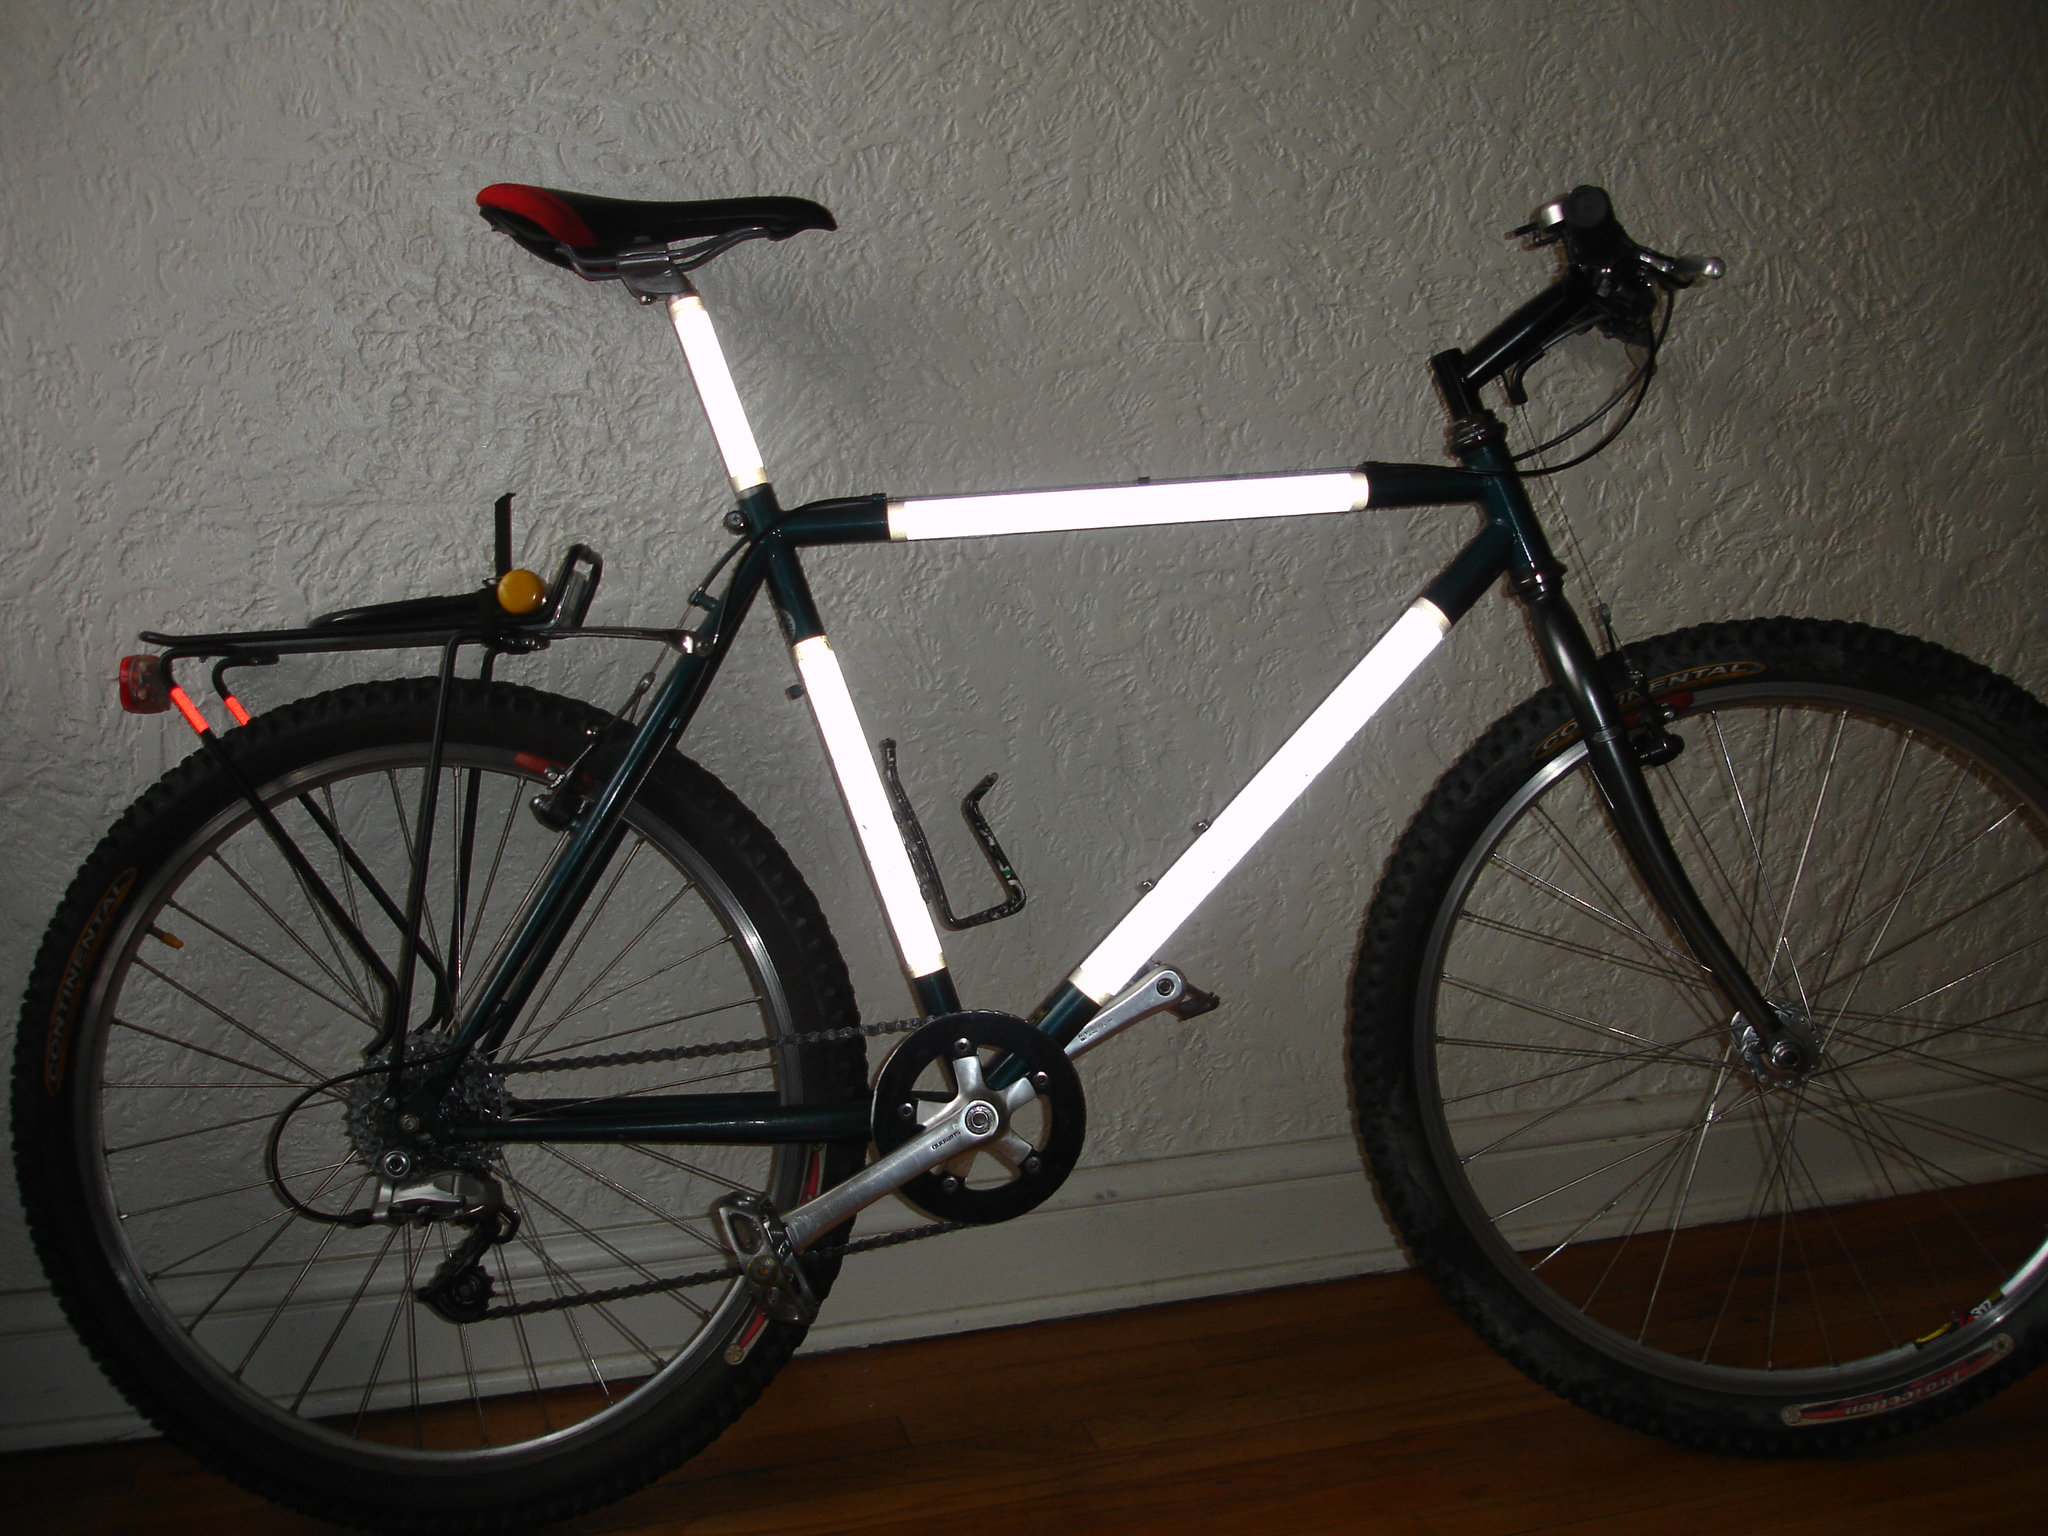 Wrap your bike in Reflective cloth